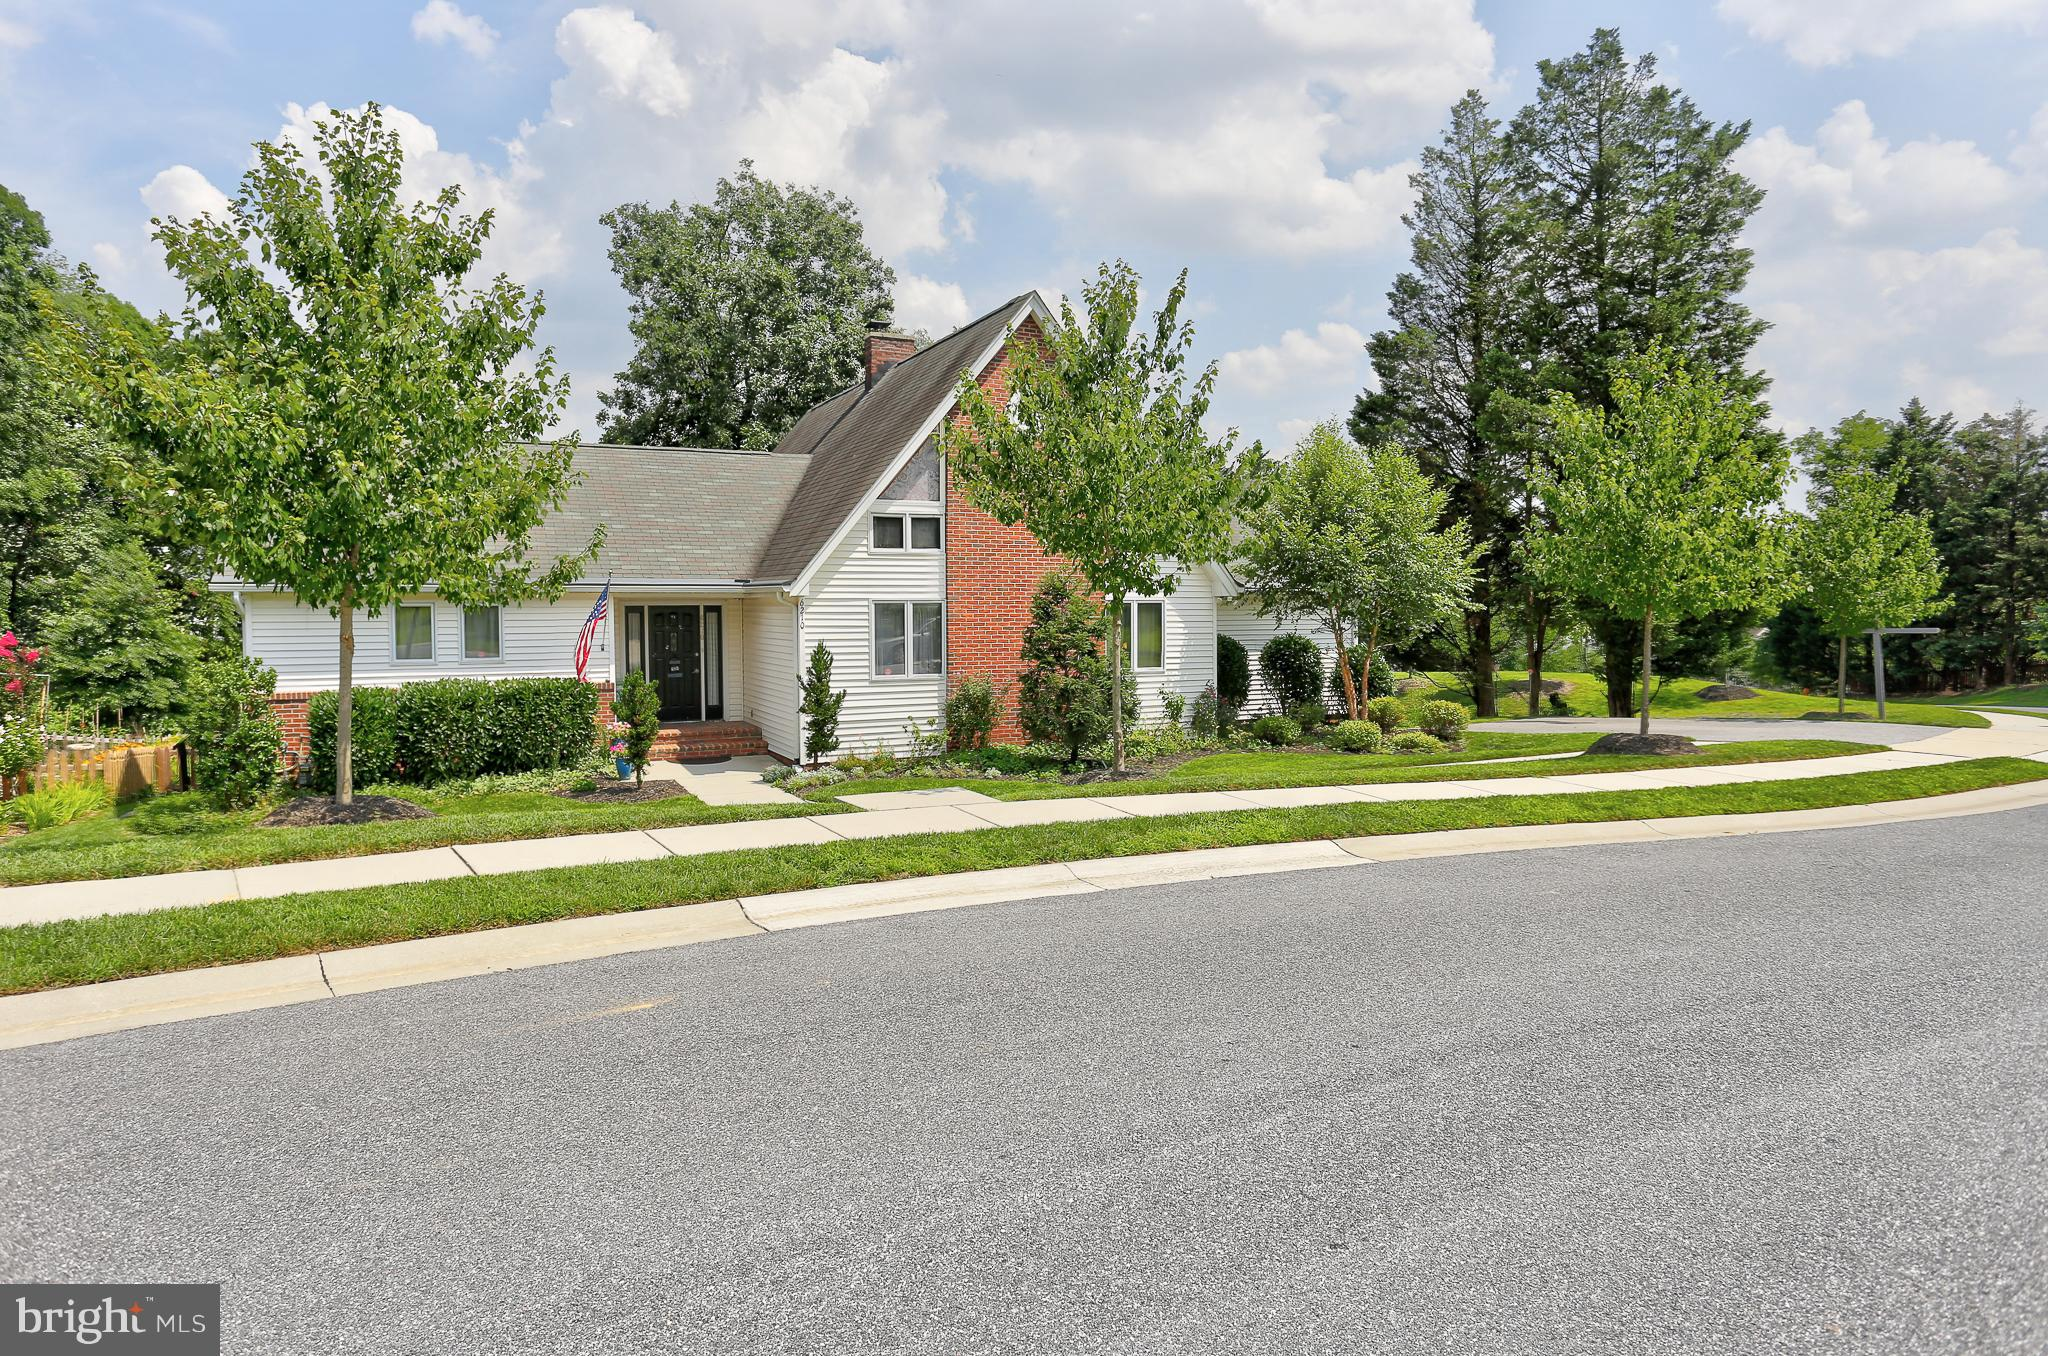 6210 MILL RIVER COURT, HANOVER, MD 21076